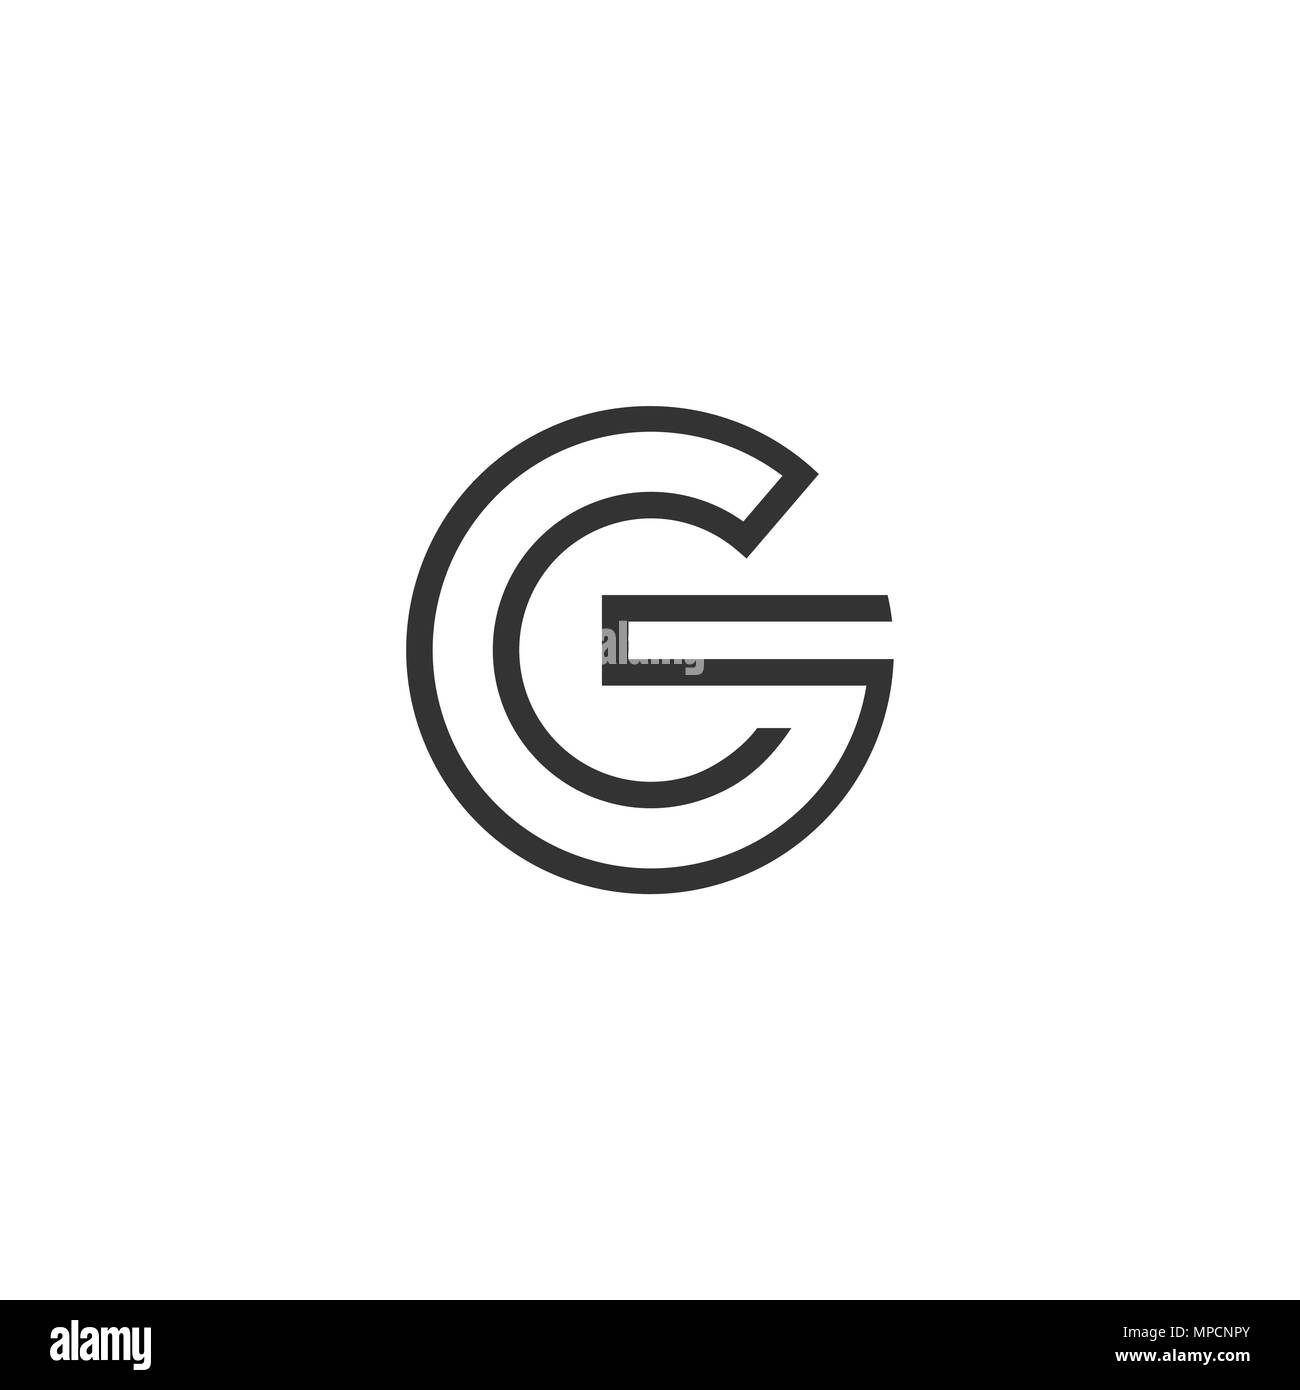 letter g logo high resolution stock photography and images alamy https www alamy com letter g logo circle line style image185906643 html